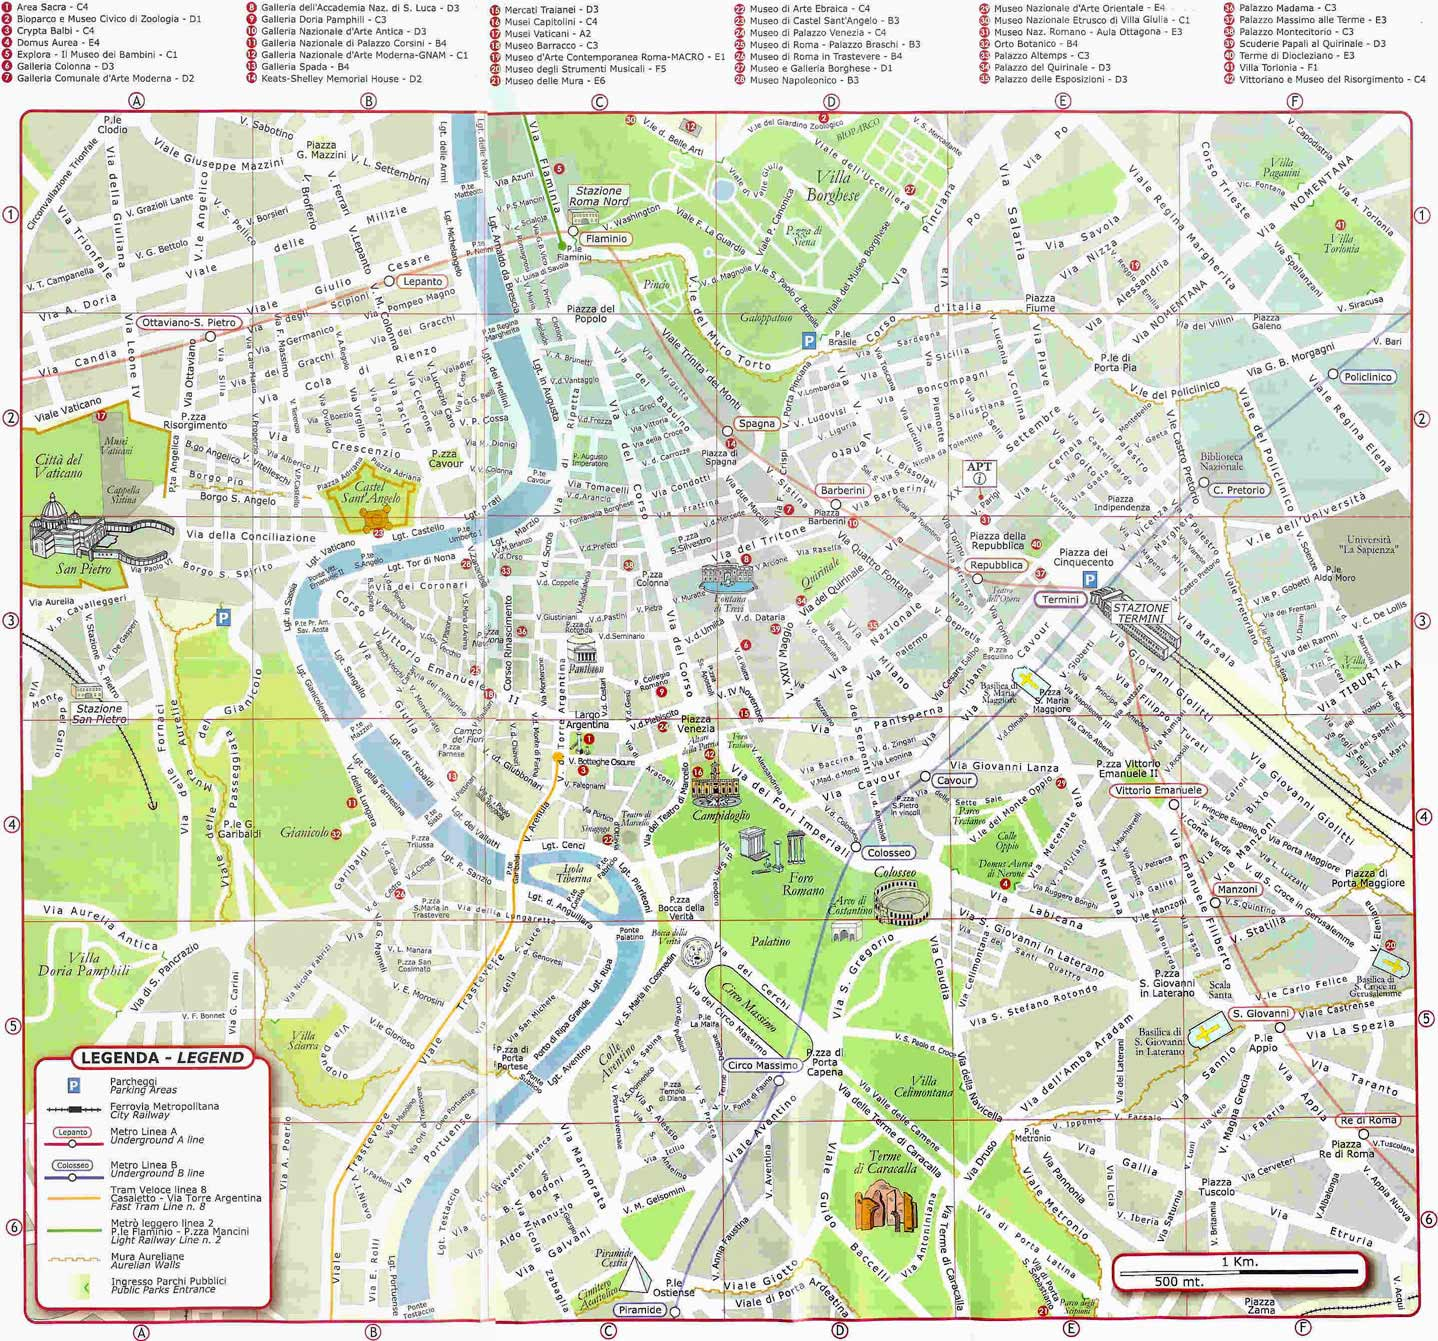 Maps of Rome Italy Roma Italia Maps Goparoo – Tourist Map of Rome